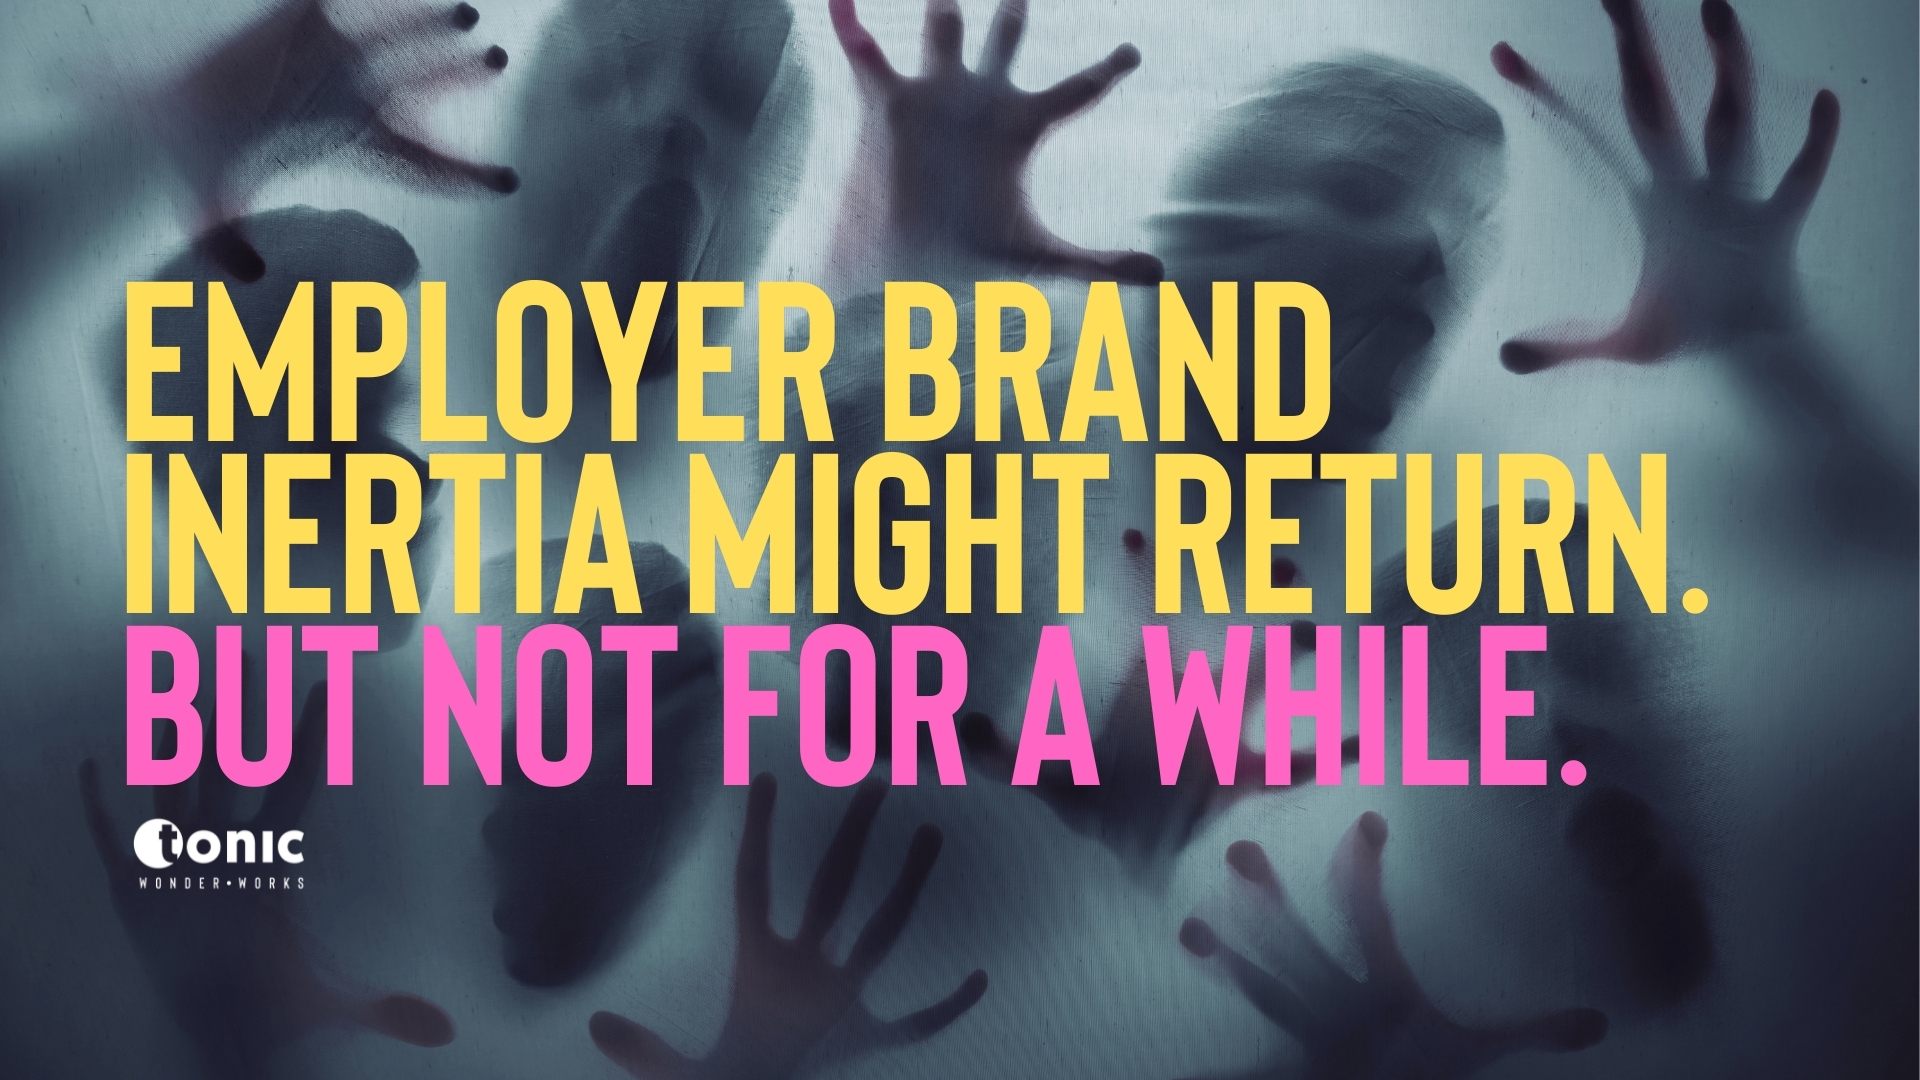 Employer Brand inertia may return. But not right now. Evolve and win.